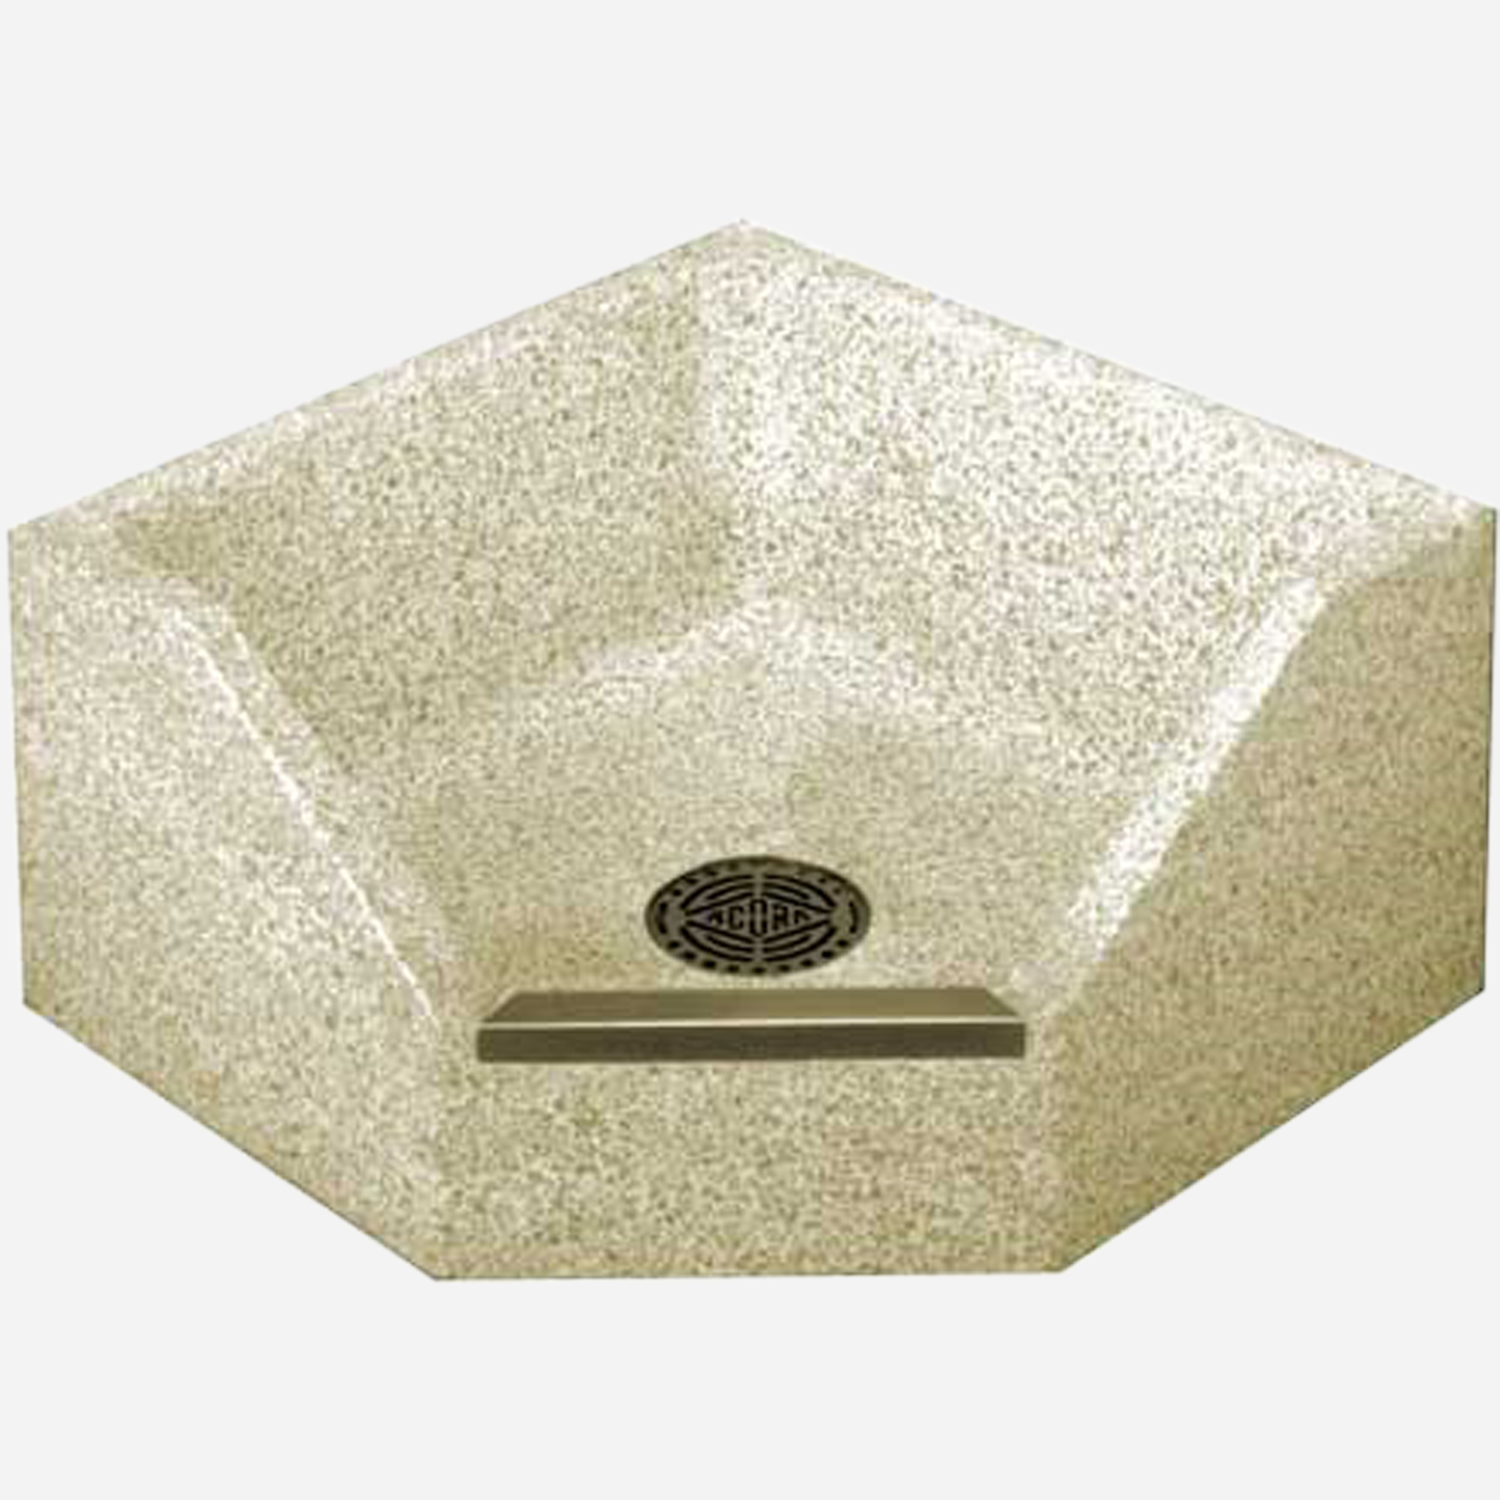 Stainless Steel Service Sinks and Terrazzo Mop Sinks